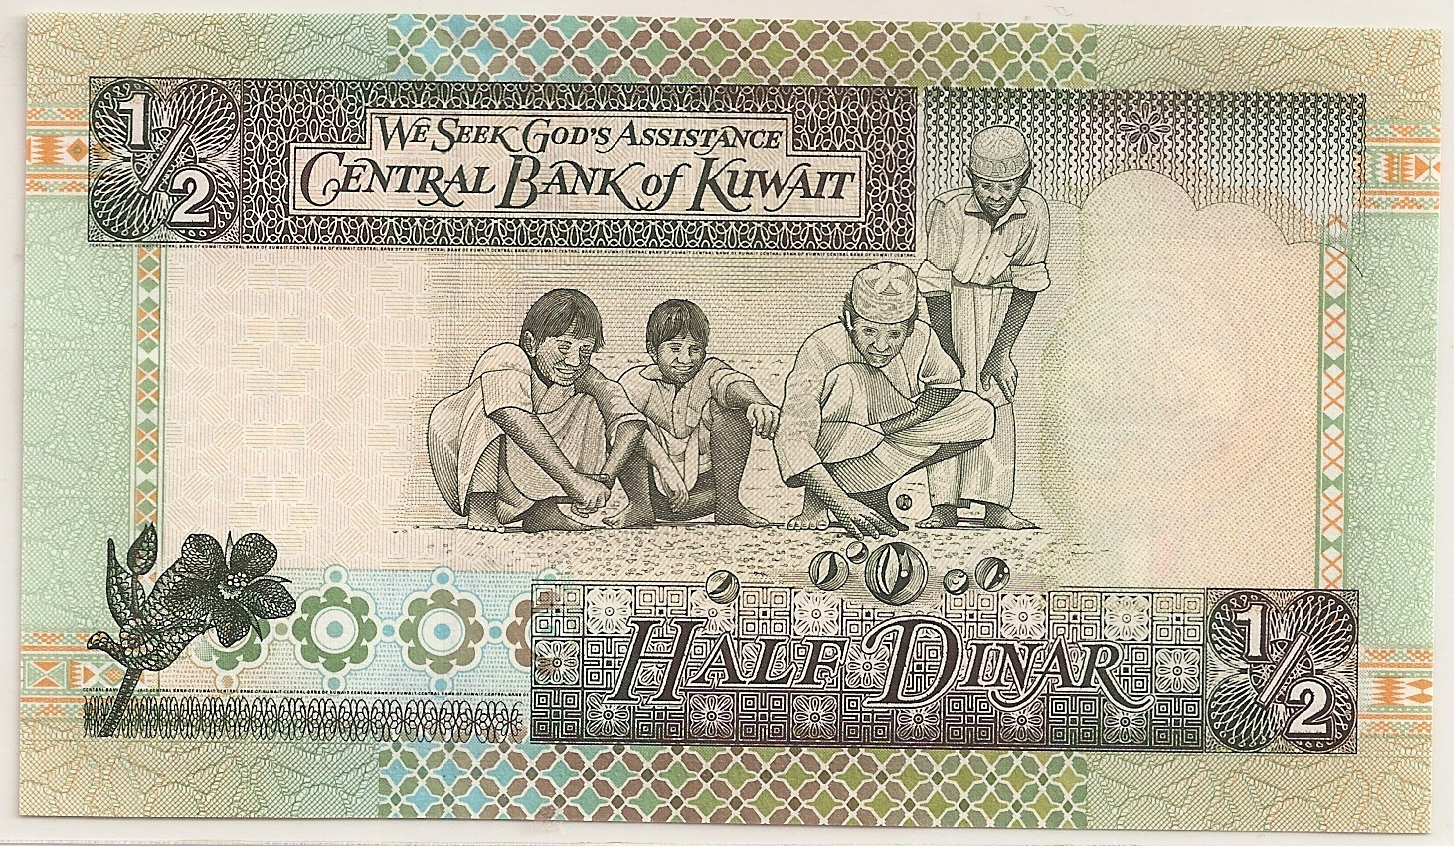 stolen by Saddam lot of 3 Kuwait P.16 We combine 20 dinars used